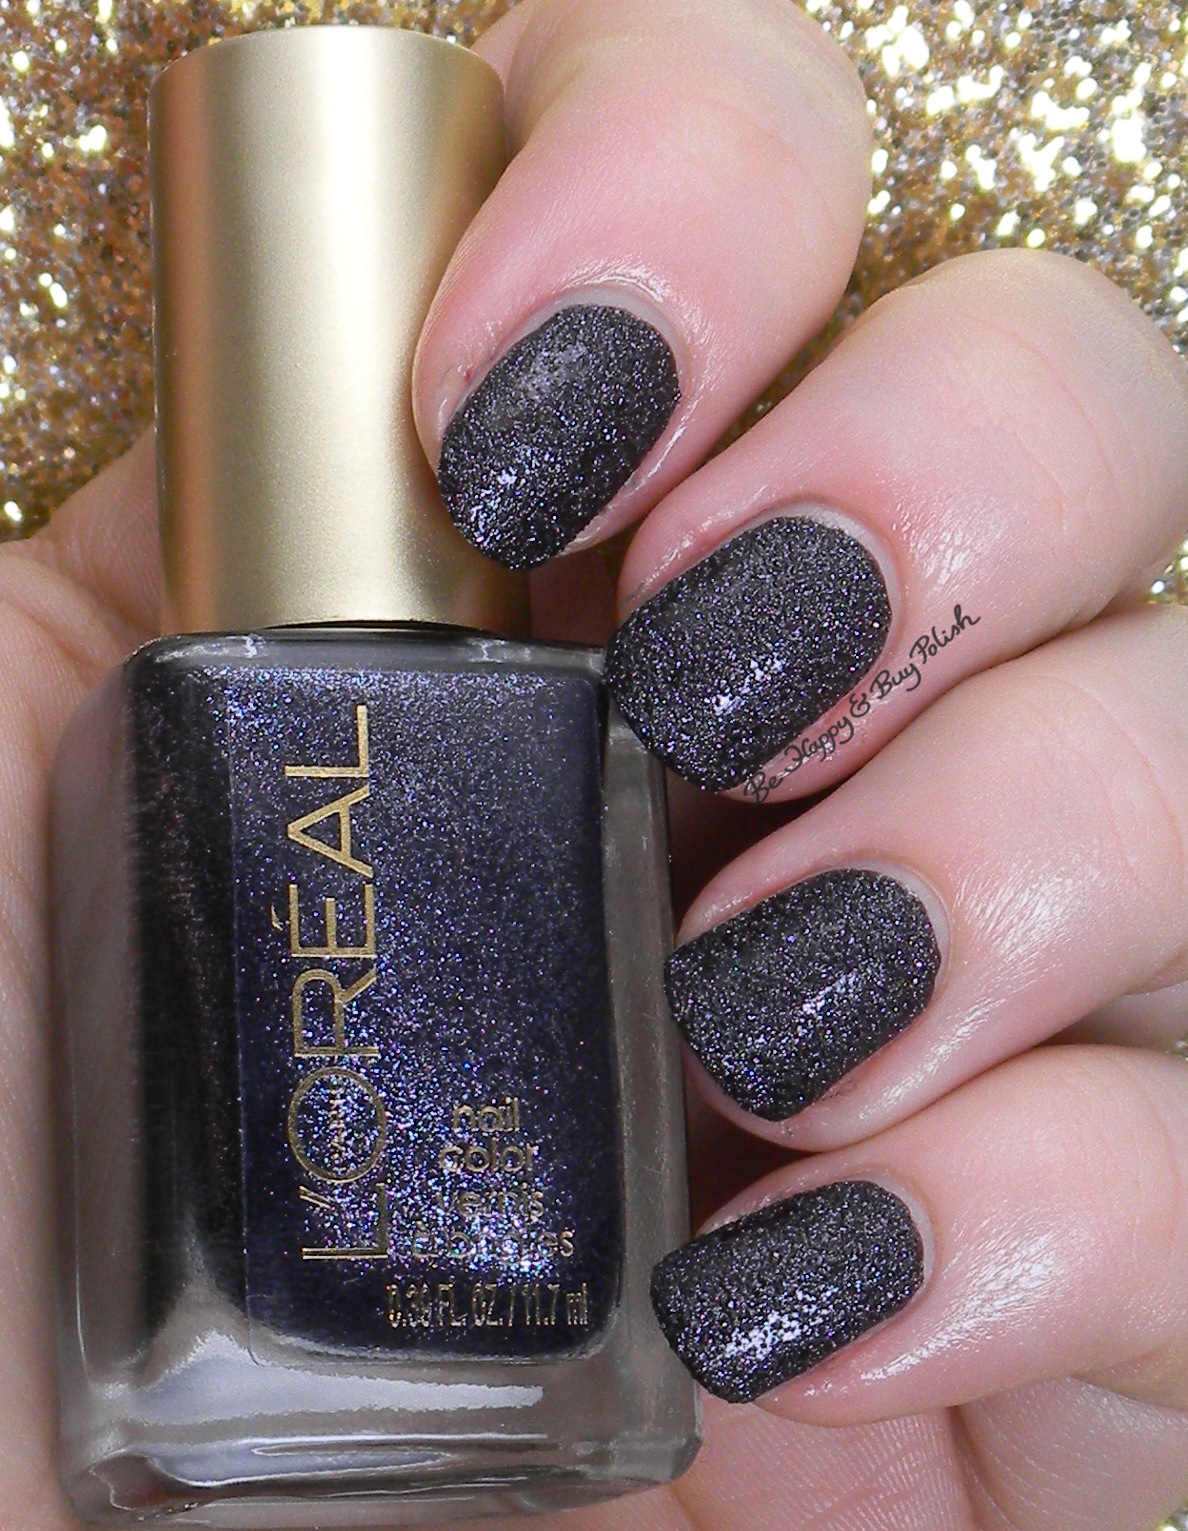 L'Oreal Dark Sides of Grey nail polishes swatches + review | Be ...